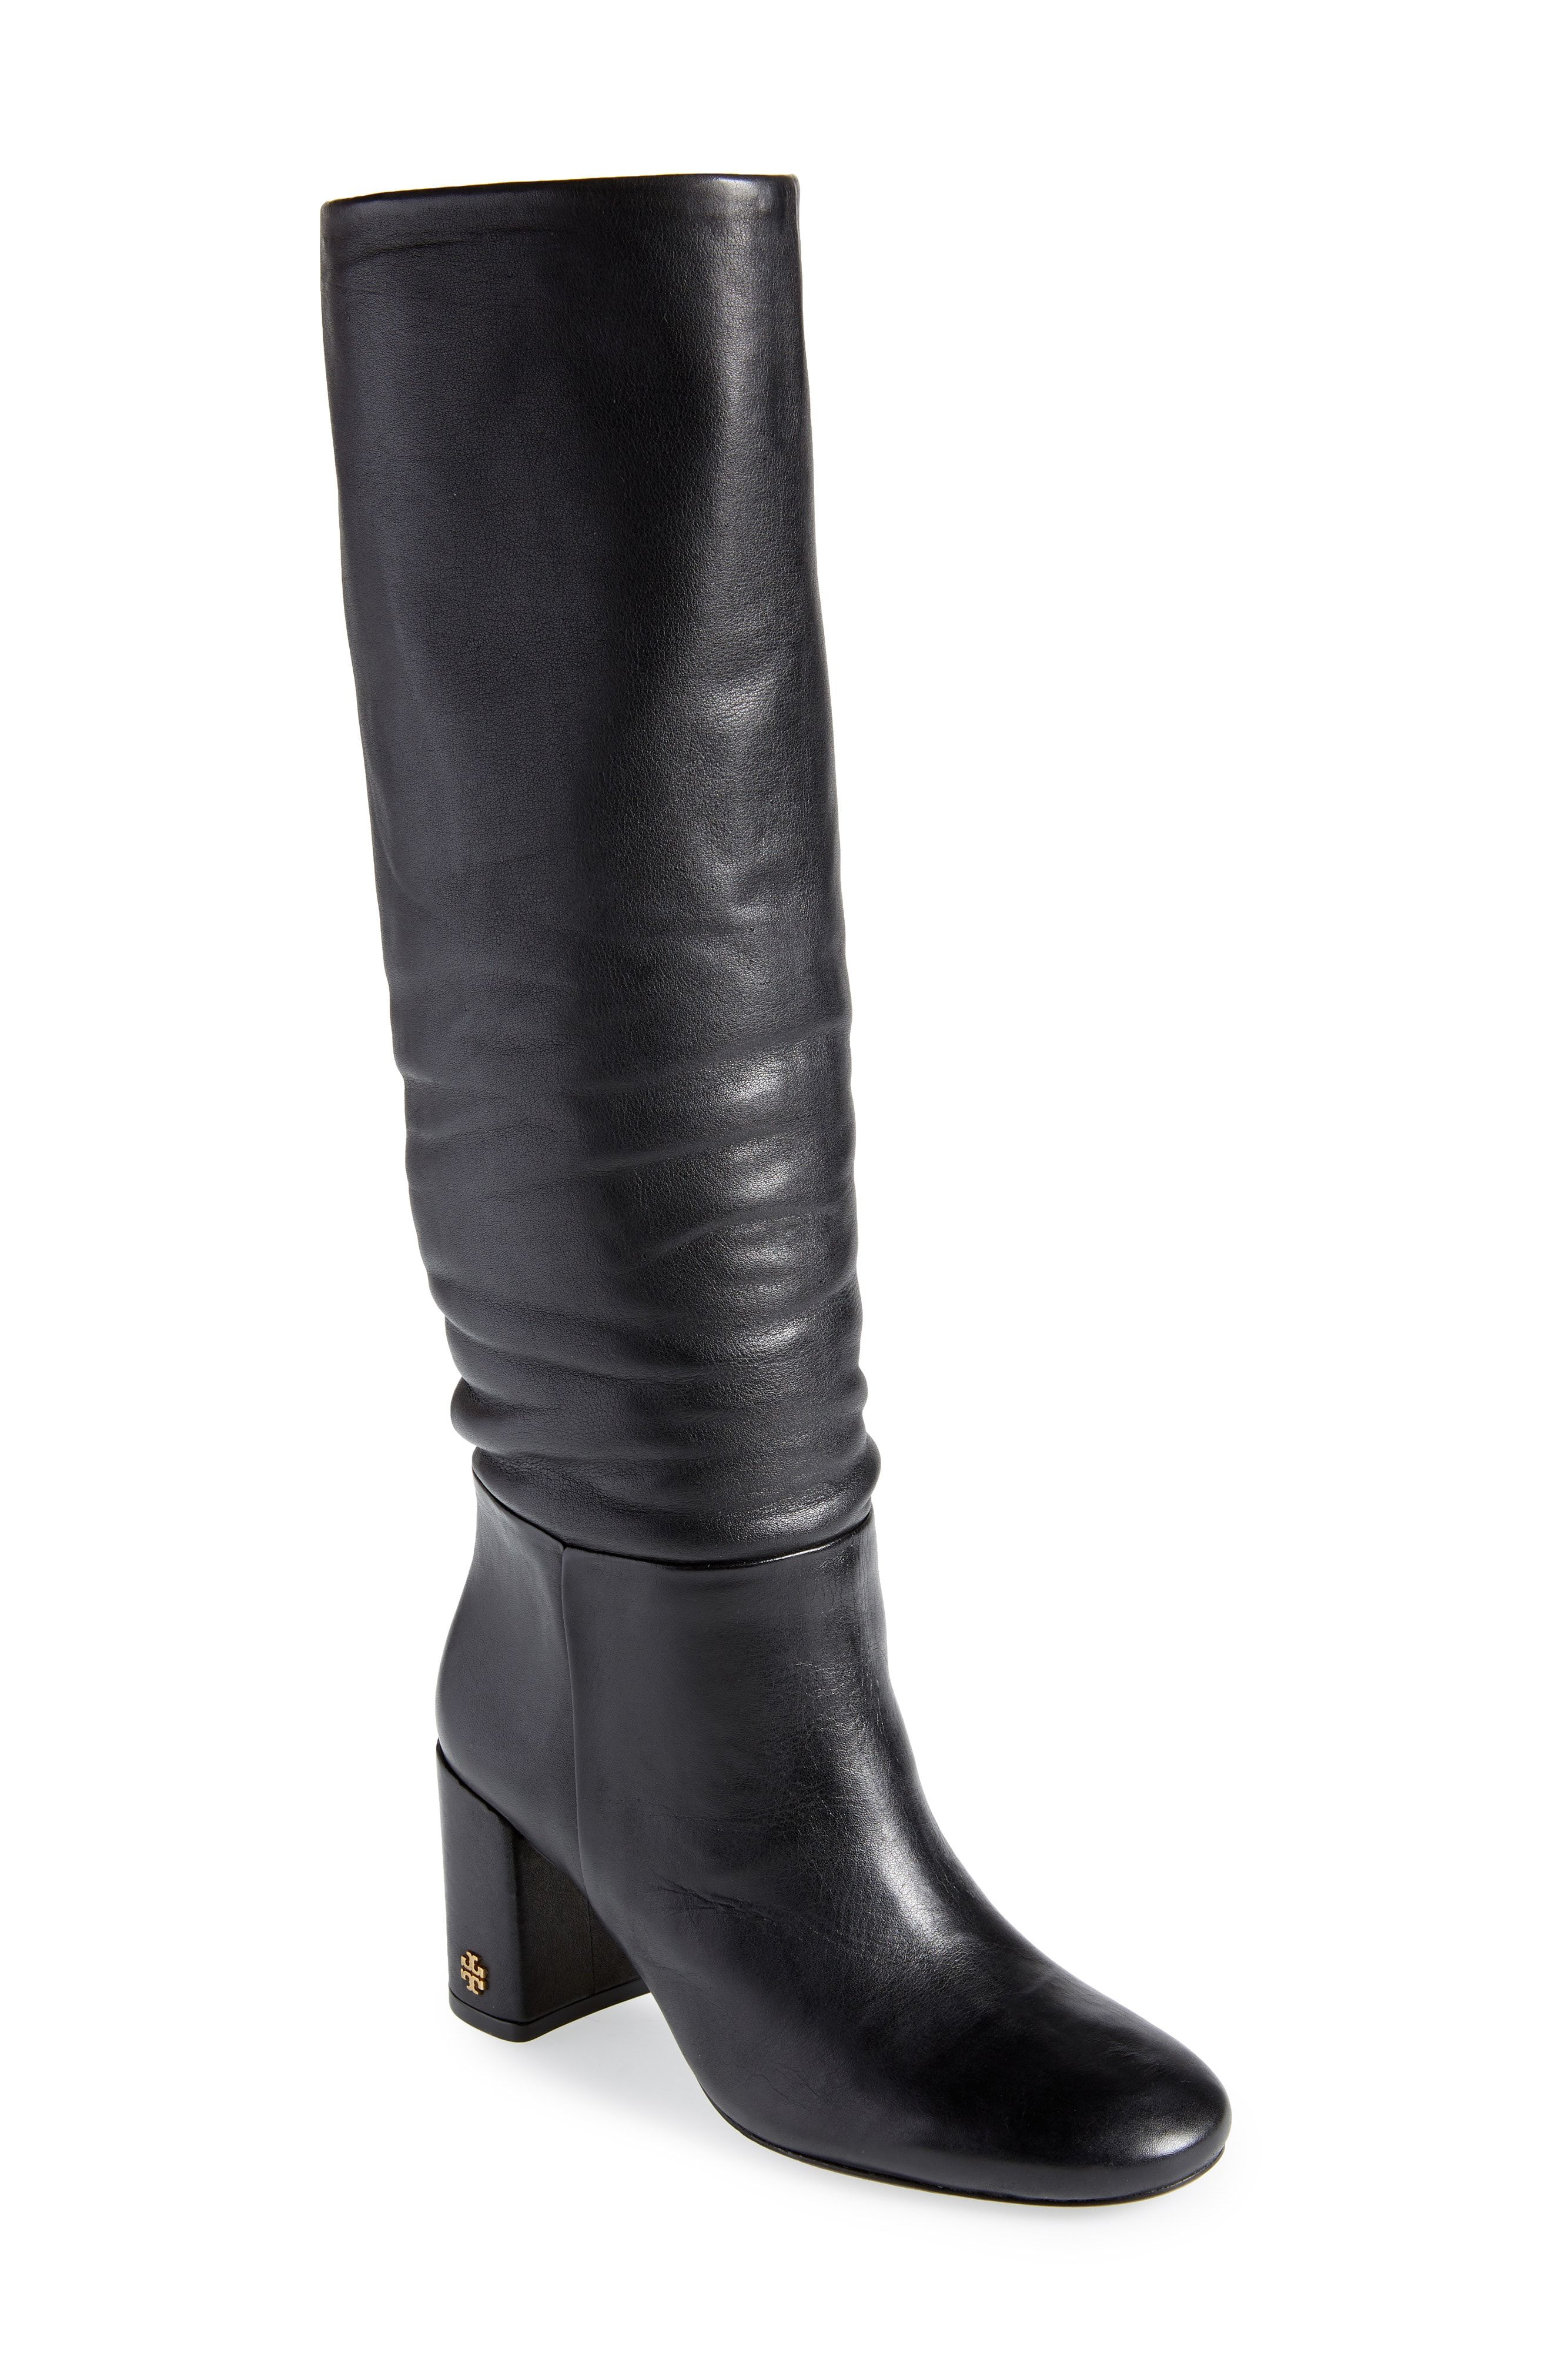 85f866e07f4 Tory Burch Brooke Slouchy Boot available at #Nordstrom | Style ...